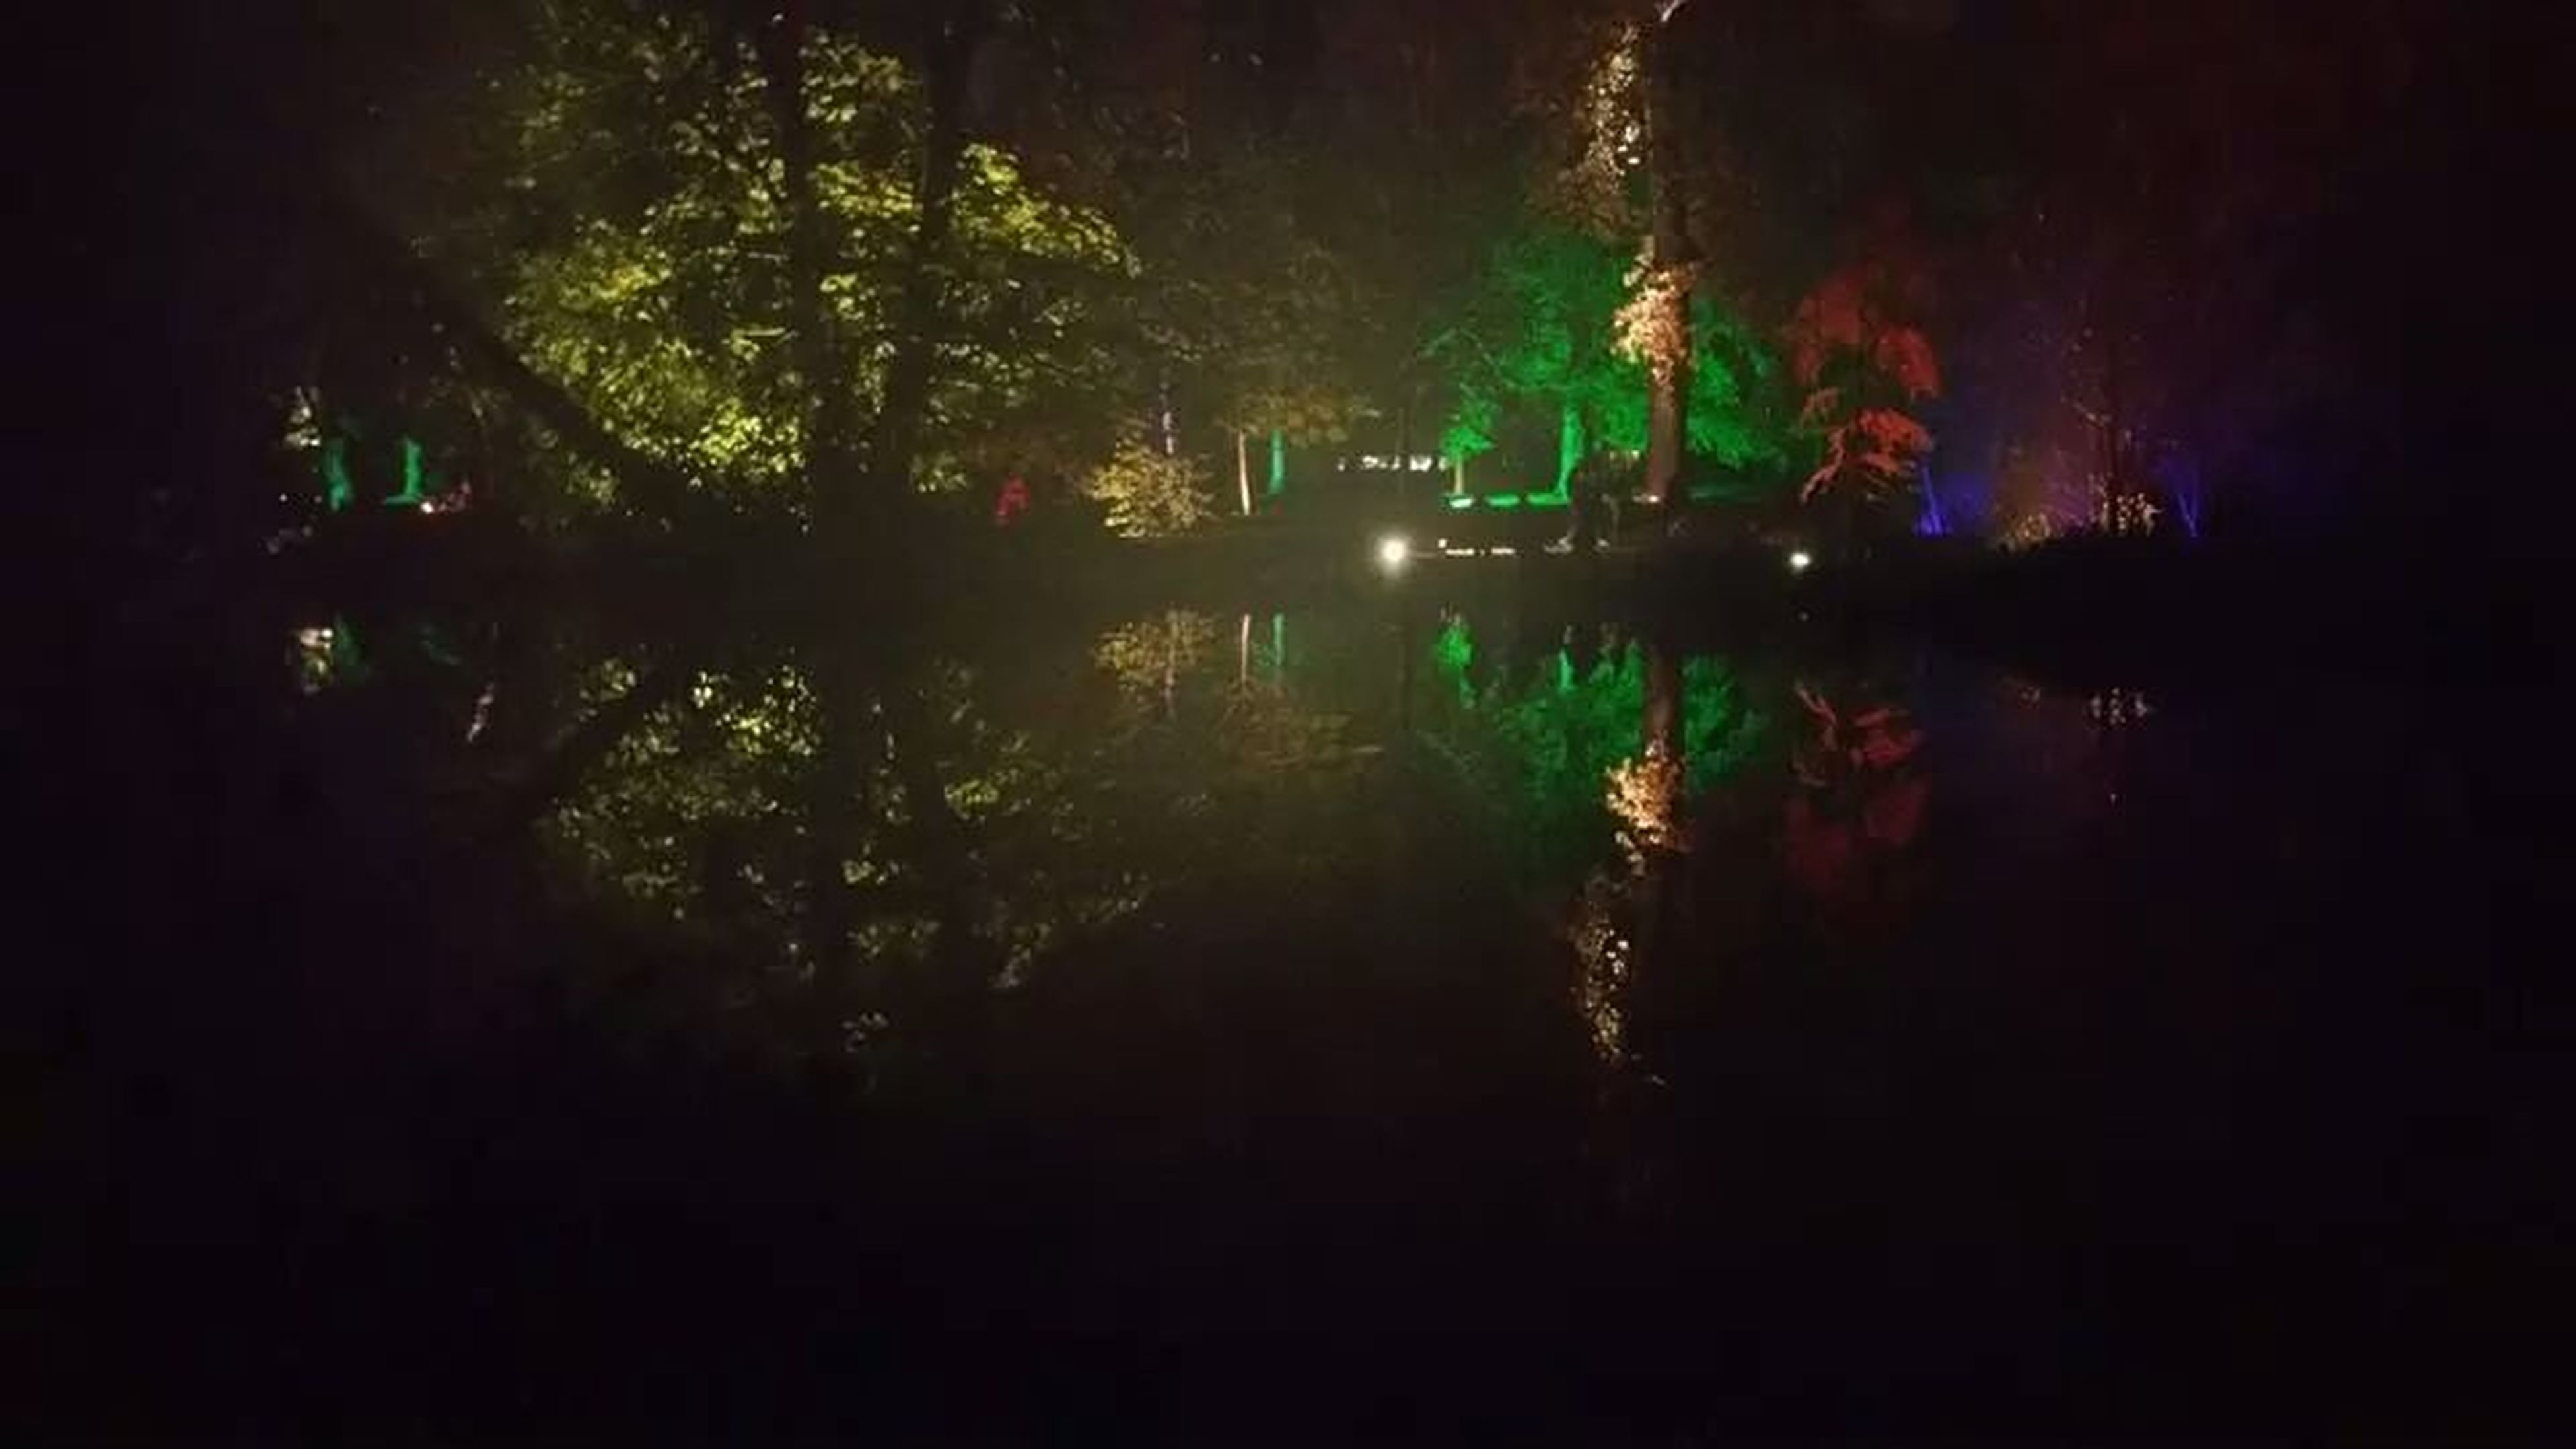 tree, tranquility, water, night, tranquil scene, growth, reflection, lake, nature, silhouette, beauty in nature, scenics, illuminated, dark, idyllic, outdoors, forest, plant, no people, green color